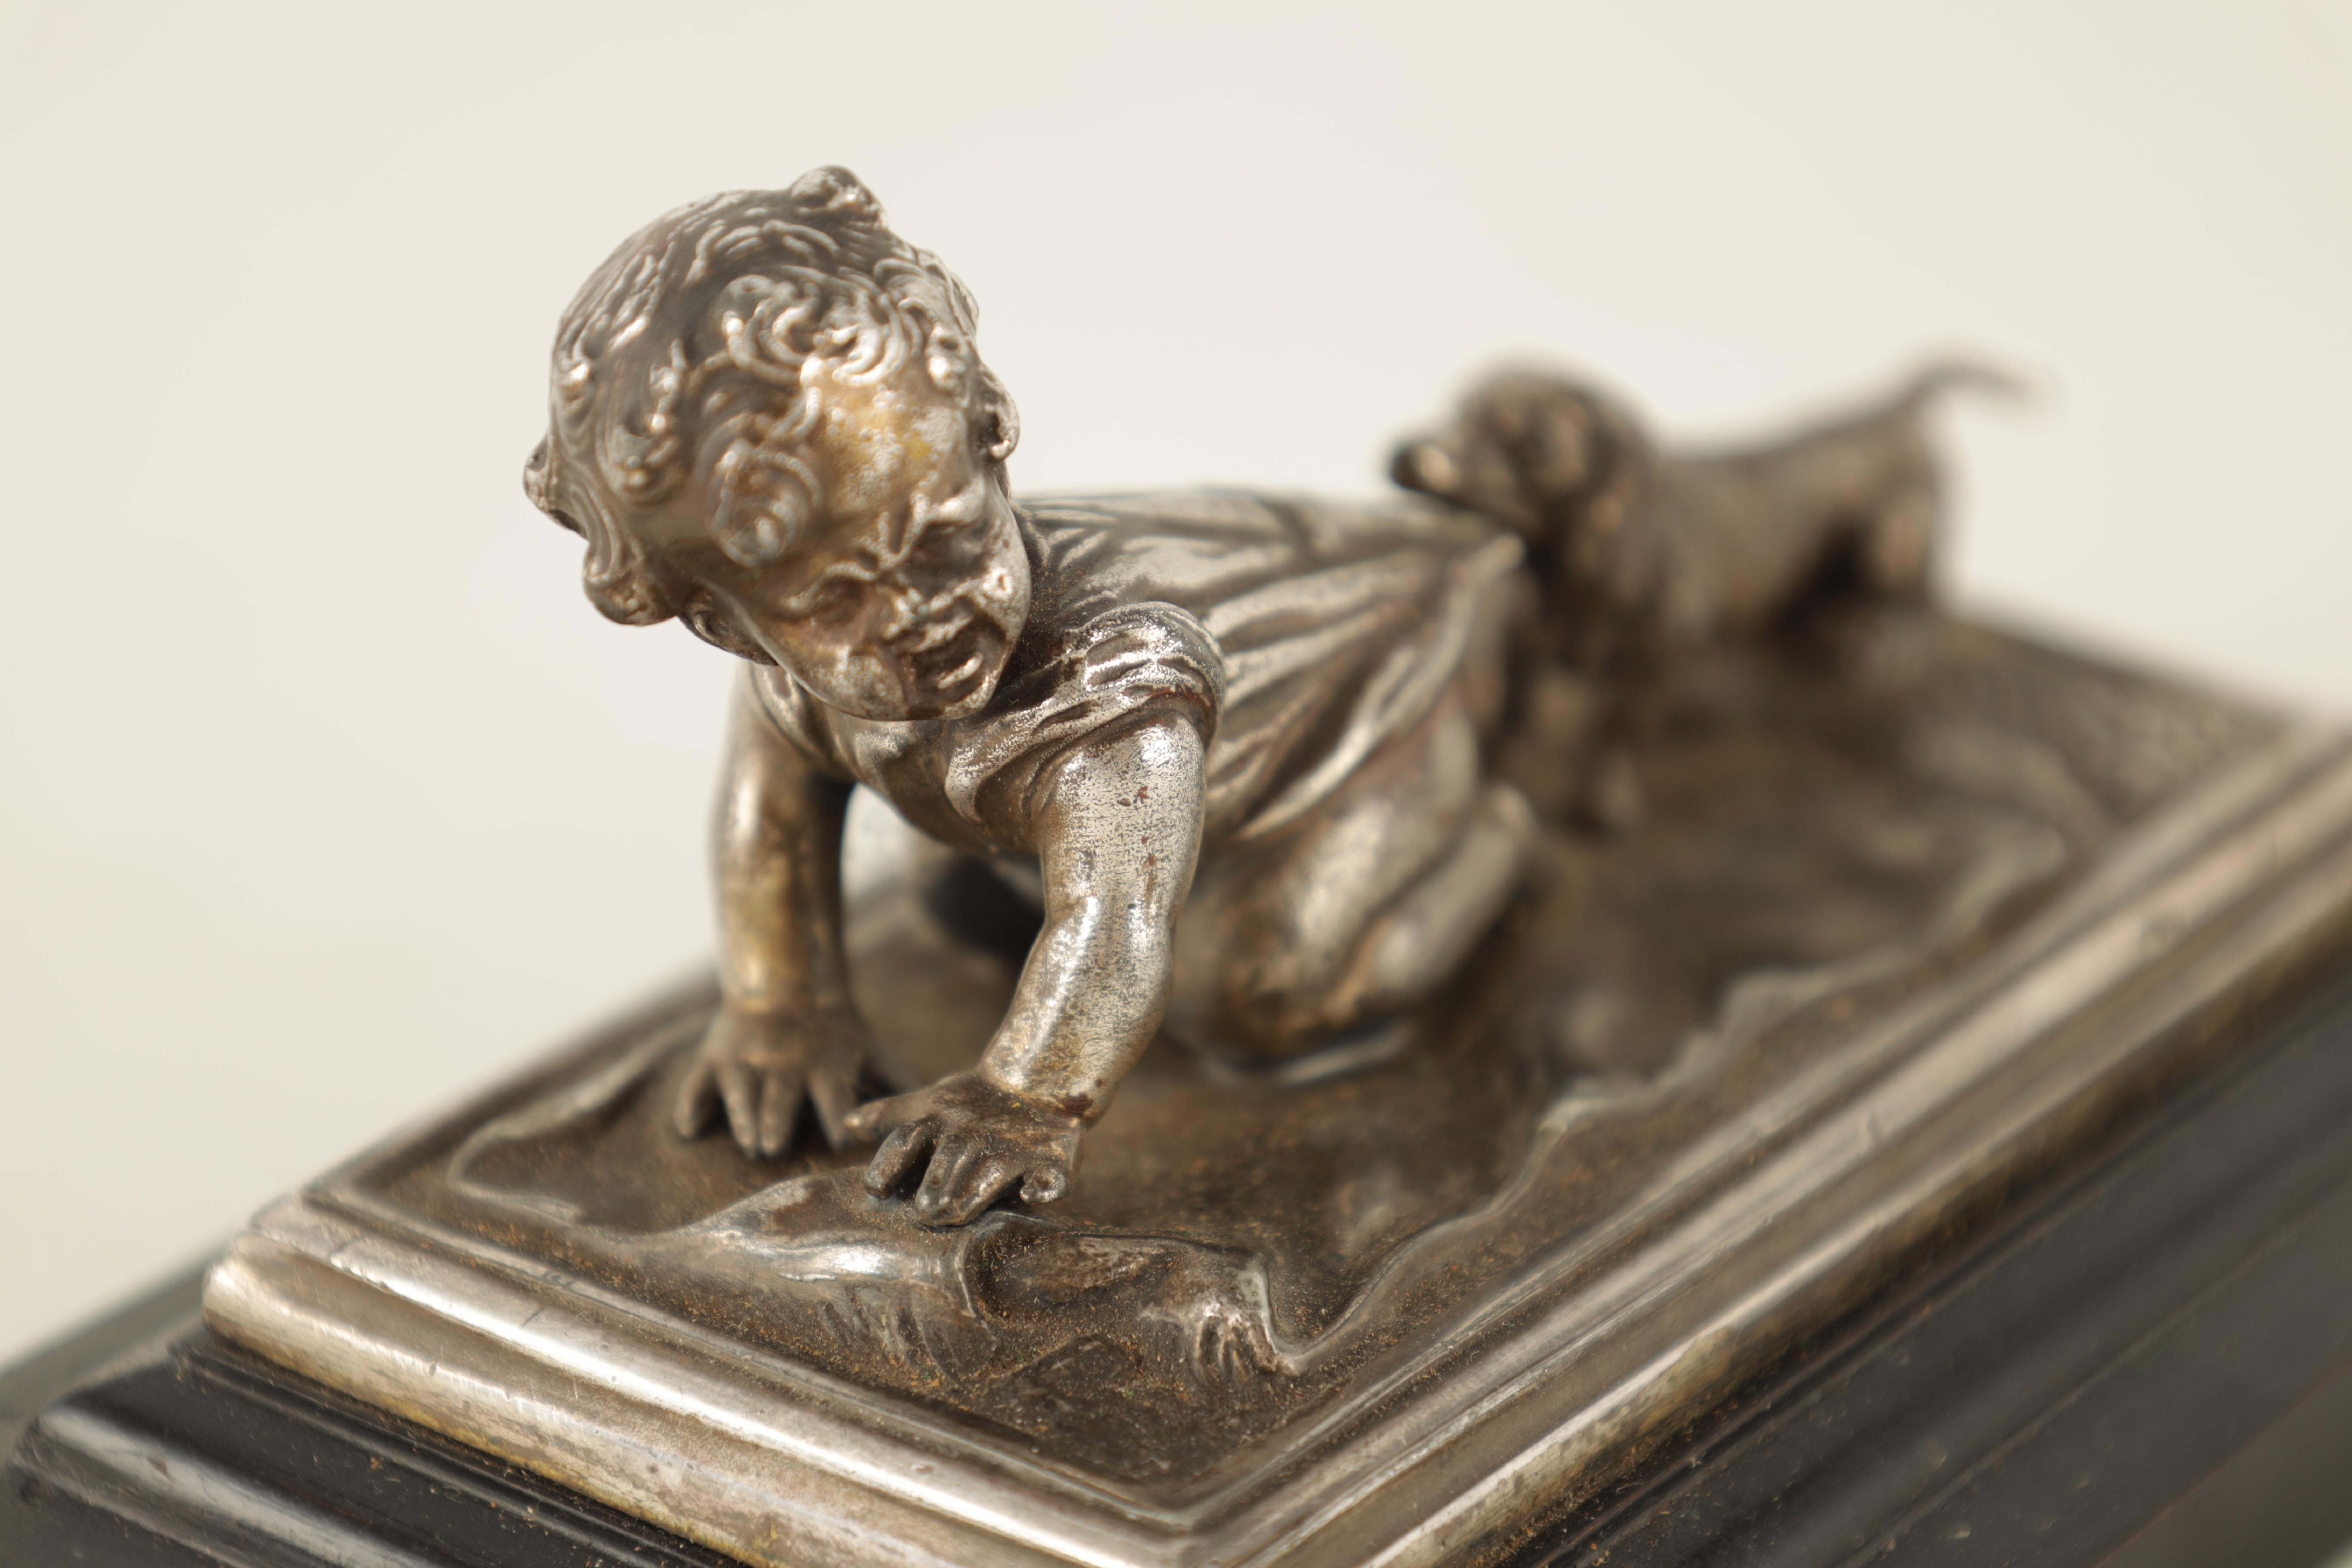 AN UNUSUAL 19TH CENTURY W.M.F. SILVERED METAL DESK PAPERWEIGHT depicting a small child with a - Image 3 of 5